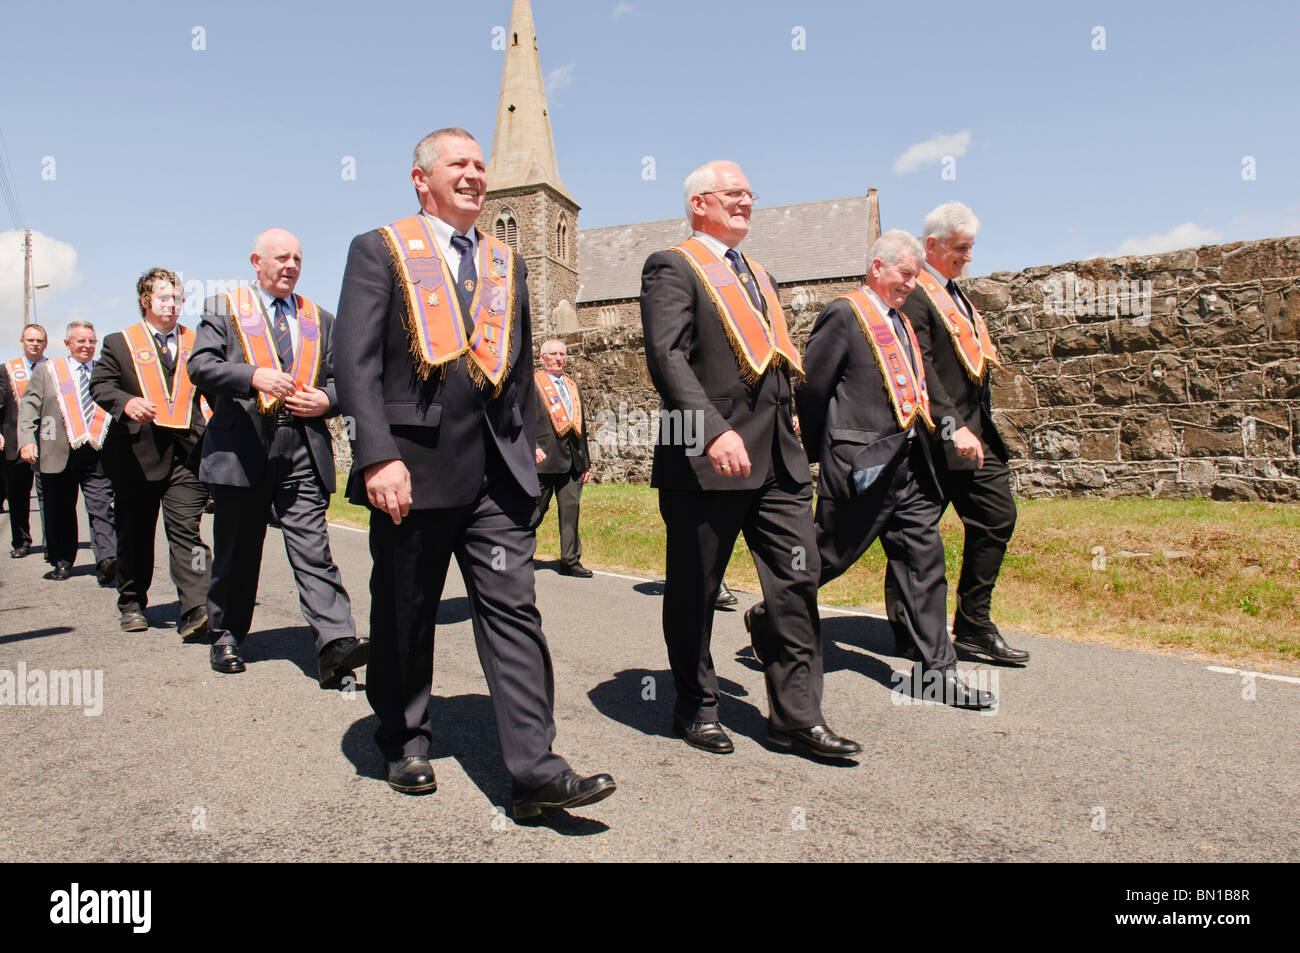 27th June 2010, Drumcree, Portadown.  LOL No 1 in an attempt to continue back to Portadown via the Garvaghy Road. Stock Photo